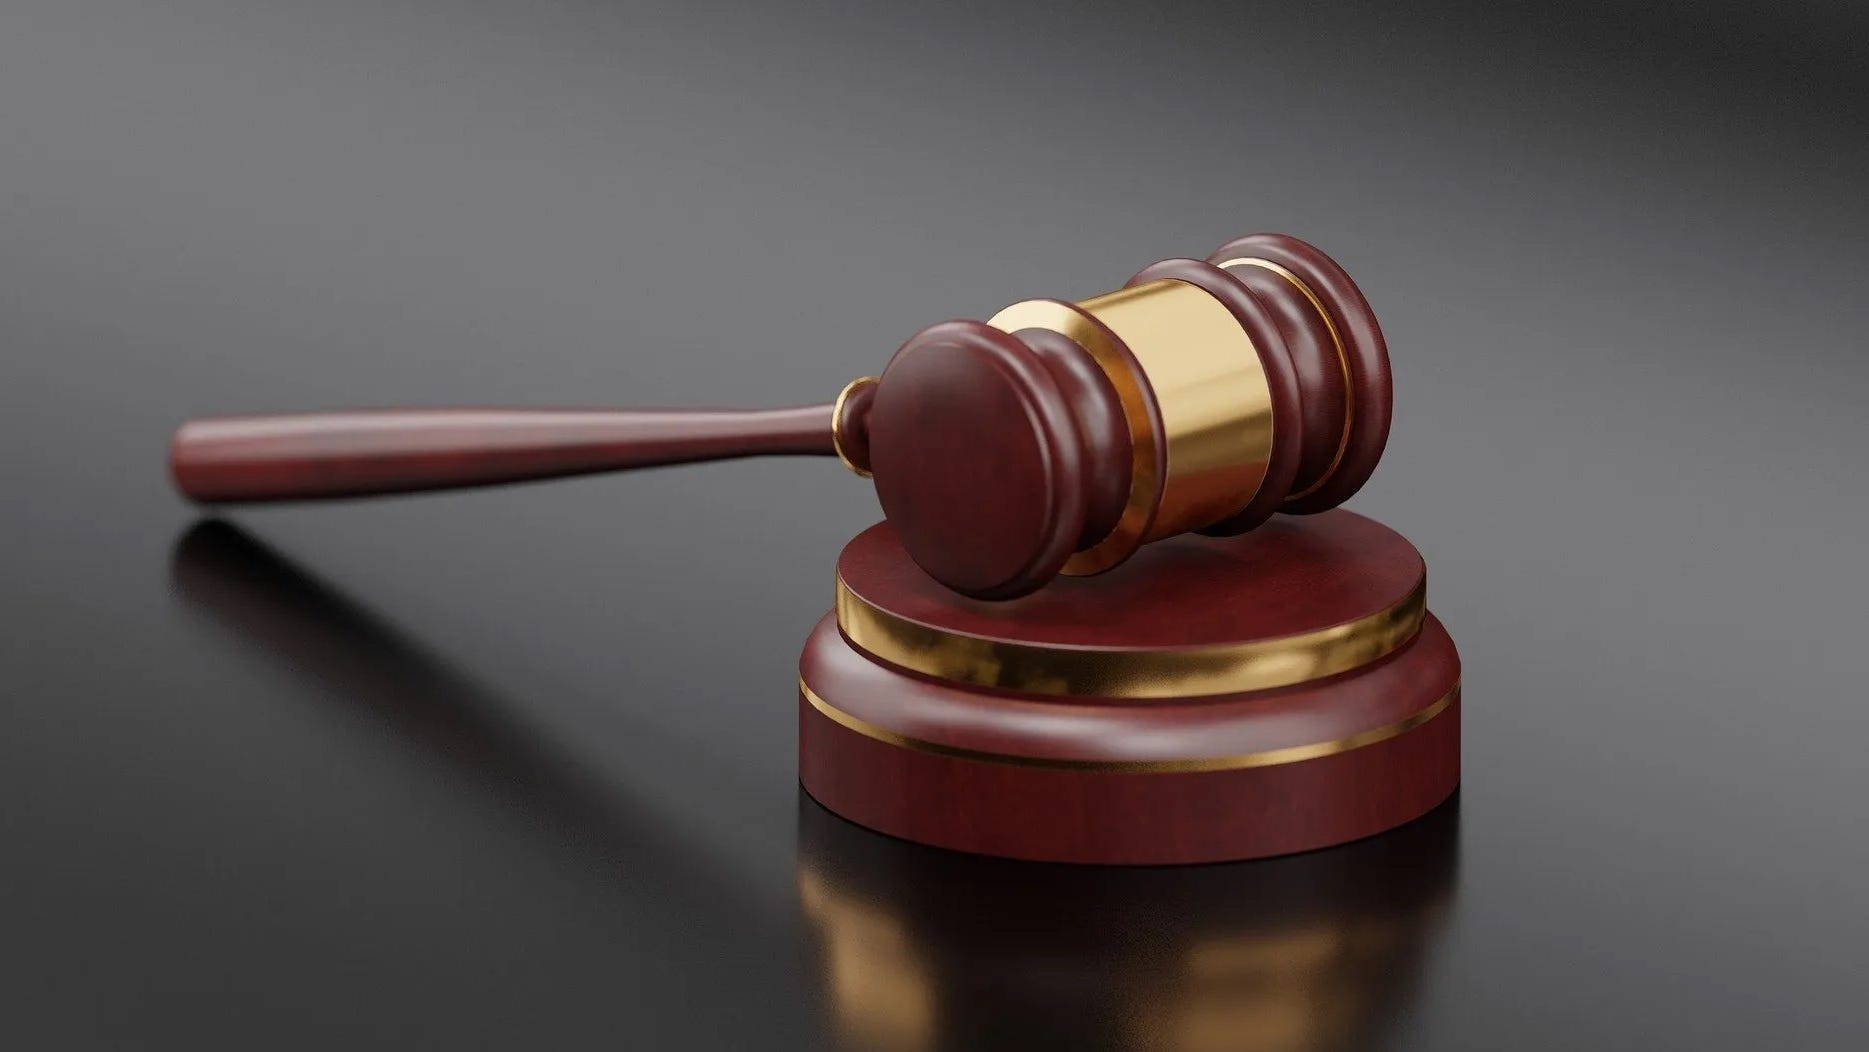 Drug charges dominate latest batch of grand jury indictments